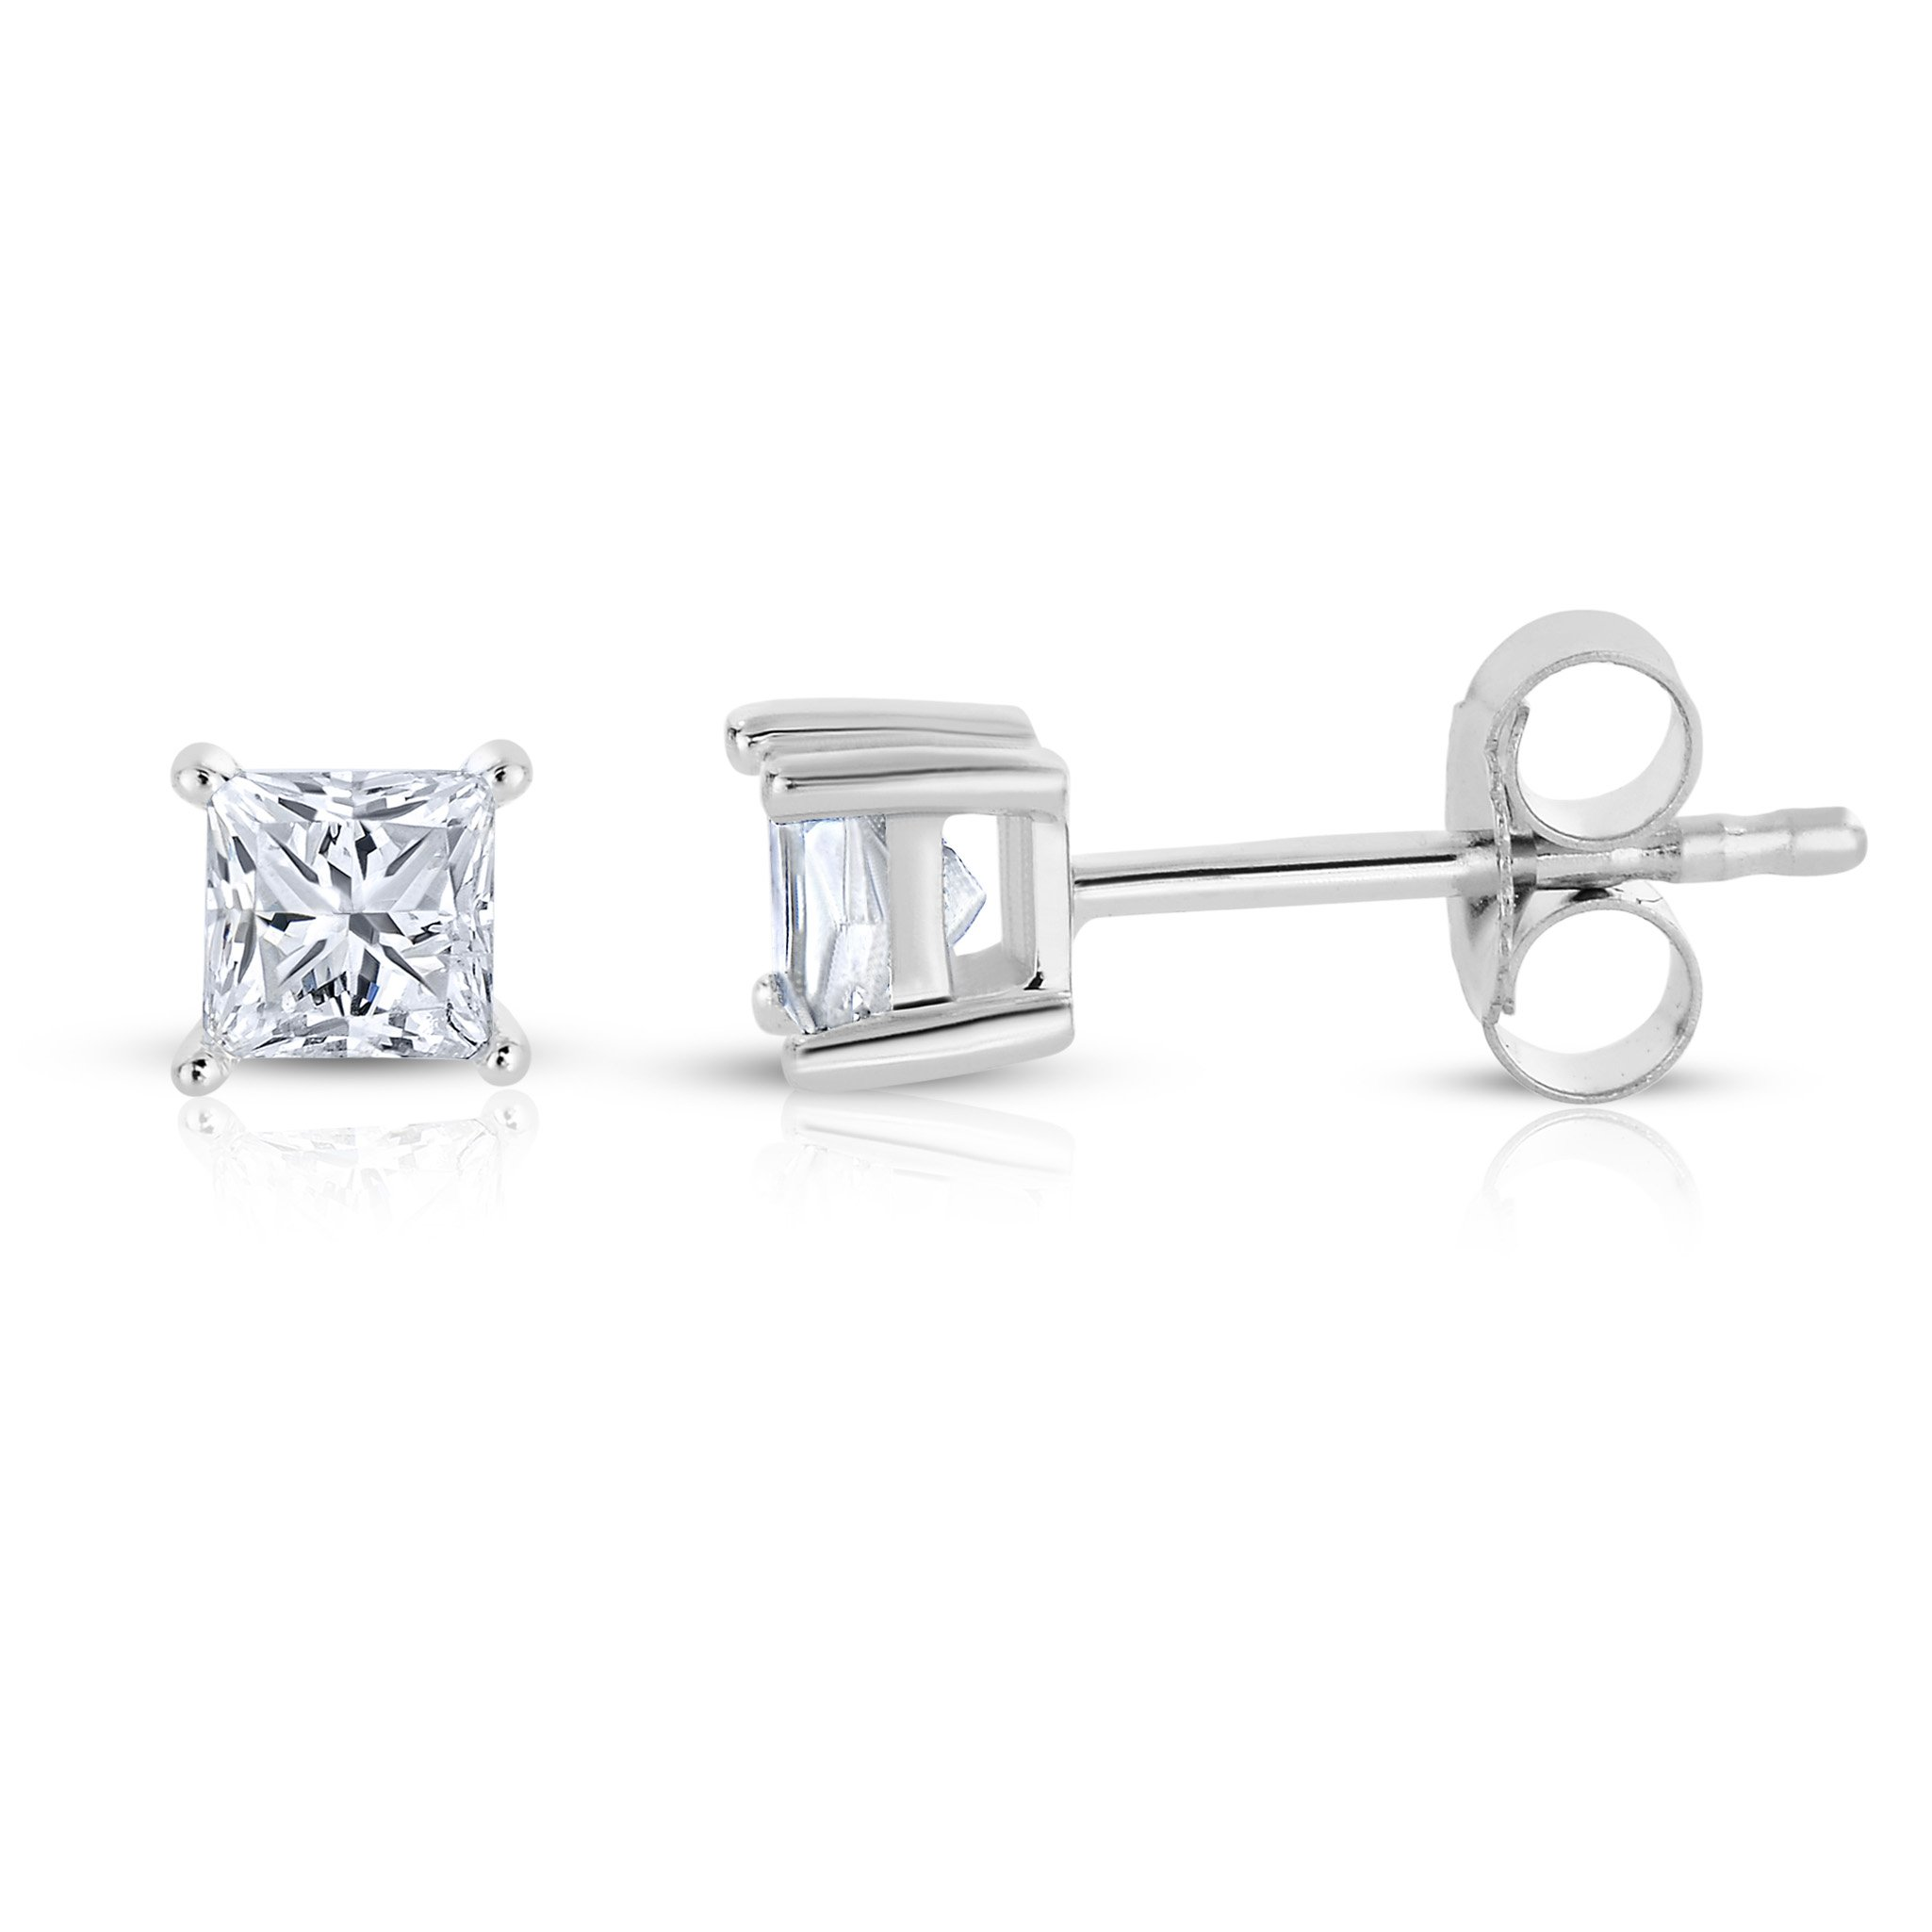 14k White Gold Princess-Cut Diamond Solitaire Stud Earrings (1/4cttw, H-I Color, I2-I3 Clarity)